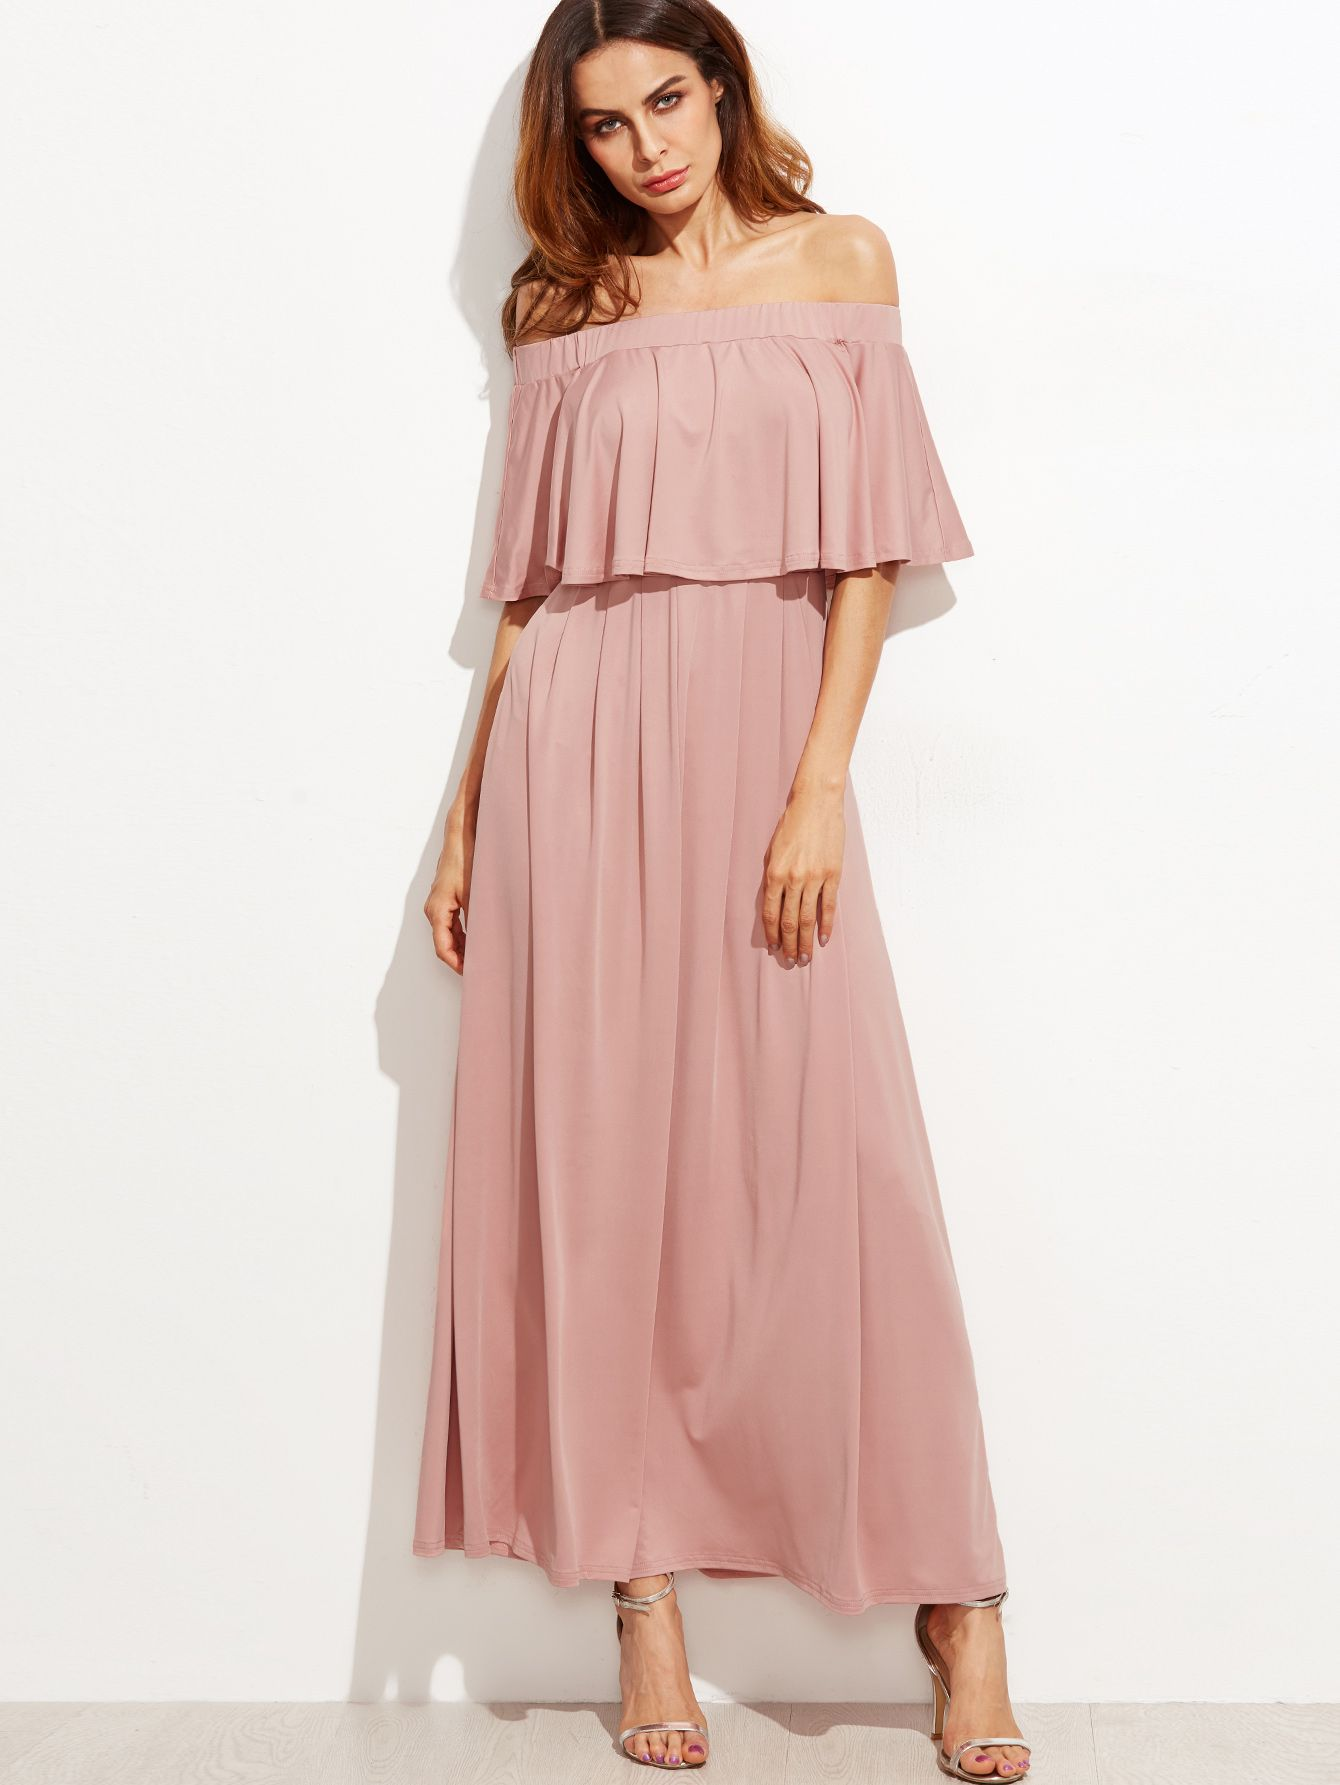 d0dc421267d Shop Pink Off The Shoulder Layered Ruffle Dress online. SheIn offers ...